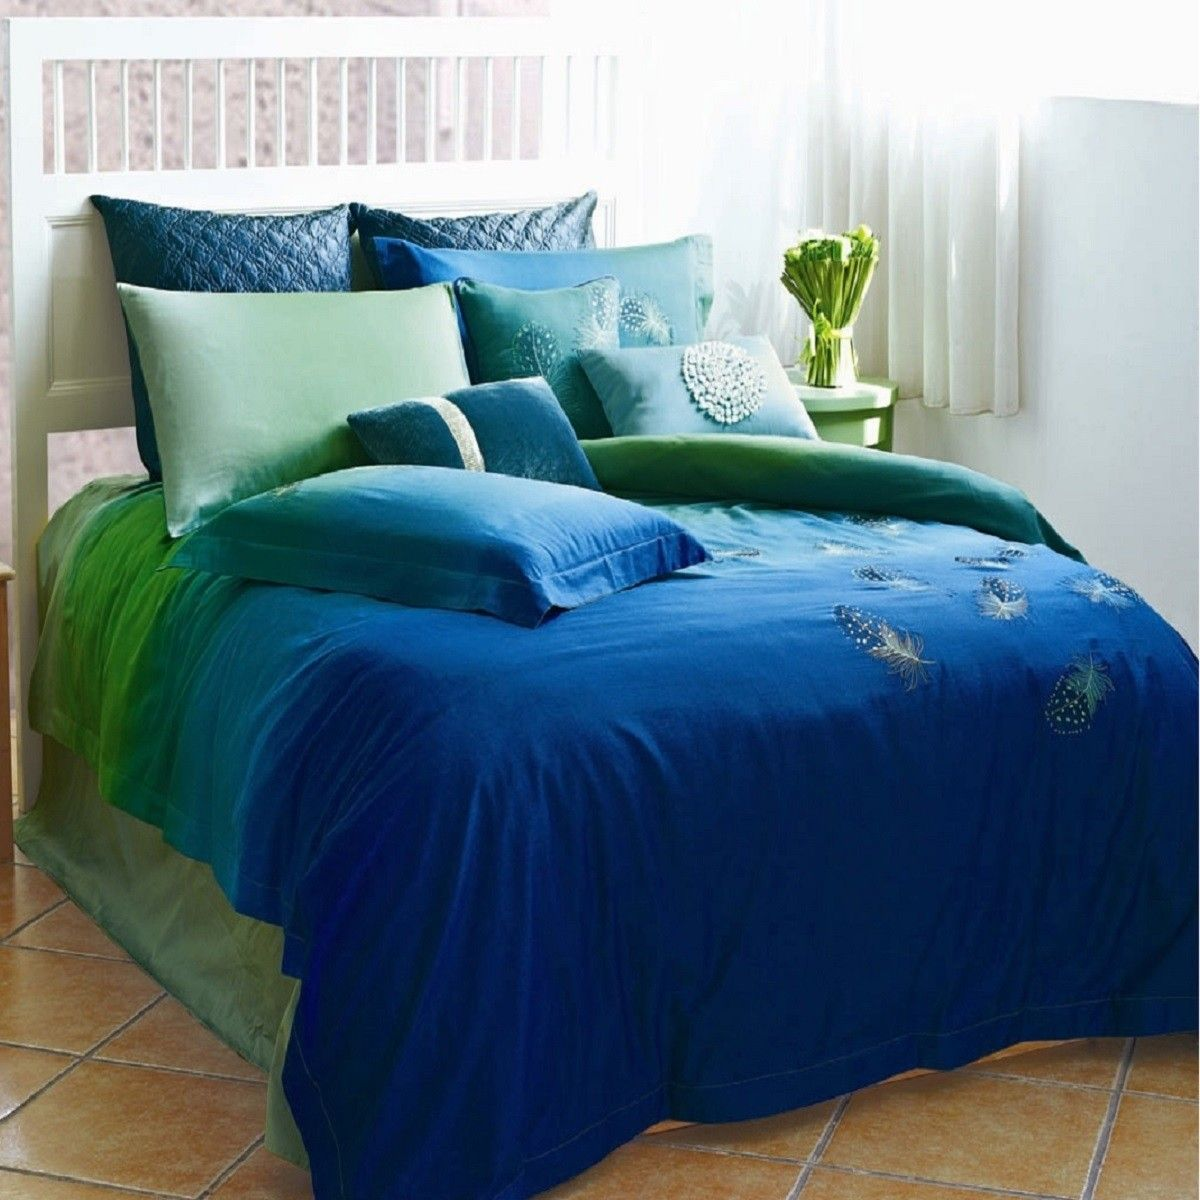 Peacock Bedroom Decor Peacock Feathers Duvet Cover Set Peacock Linens Bedding